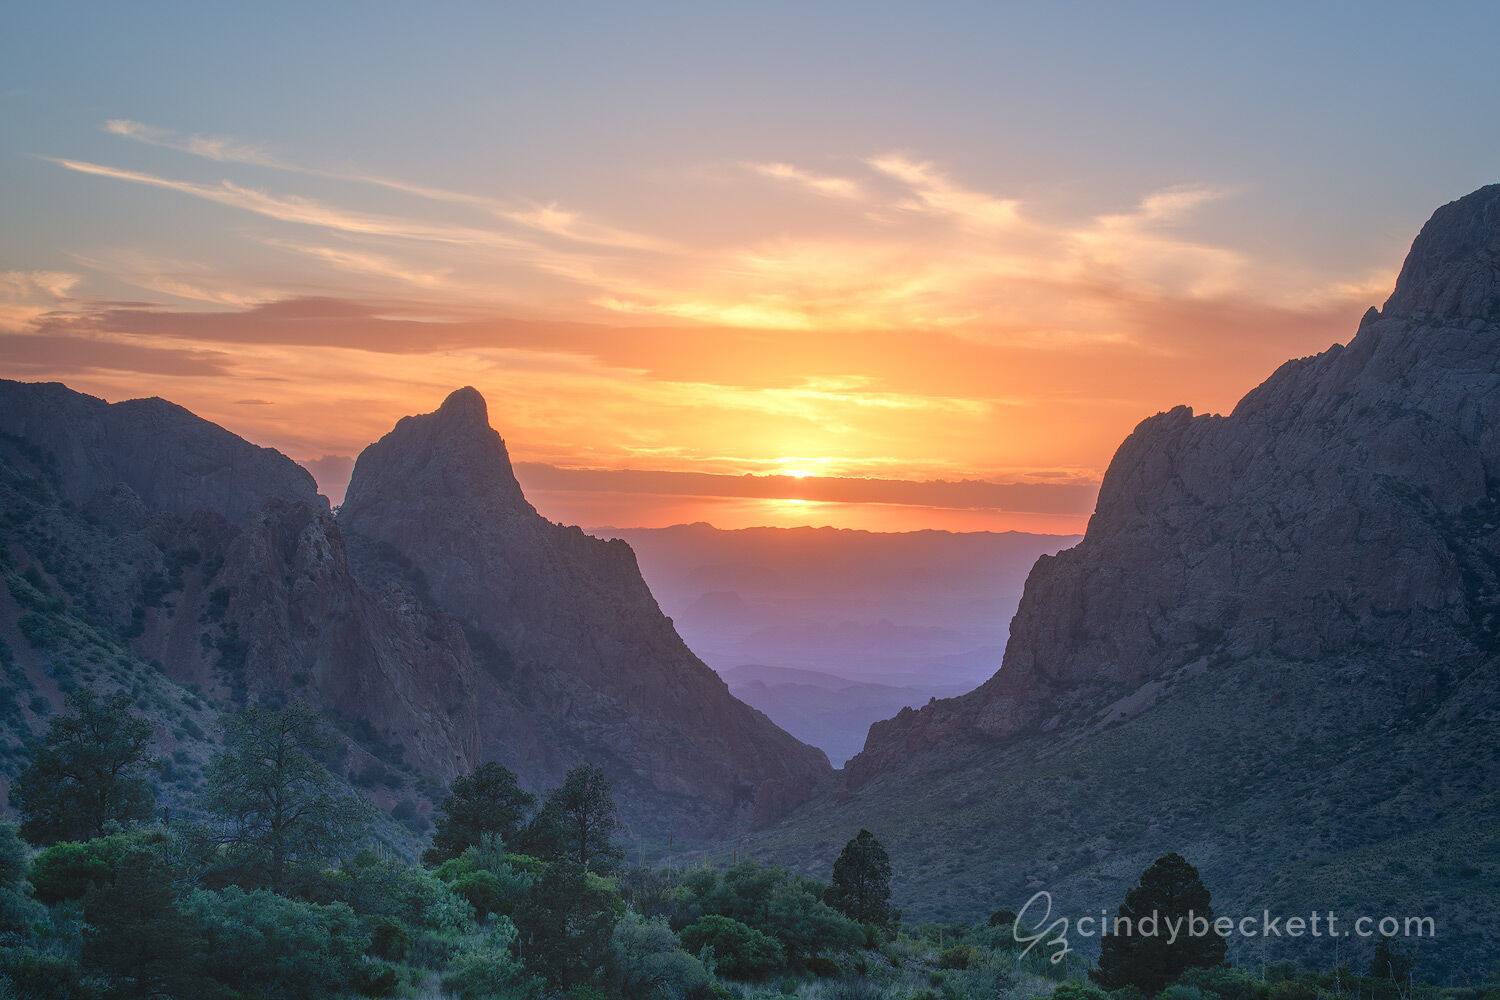 Sunset as viewed through The Window formation from the trail at Chisos Basin in Big Bend National Park.